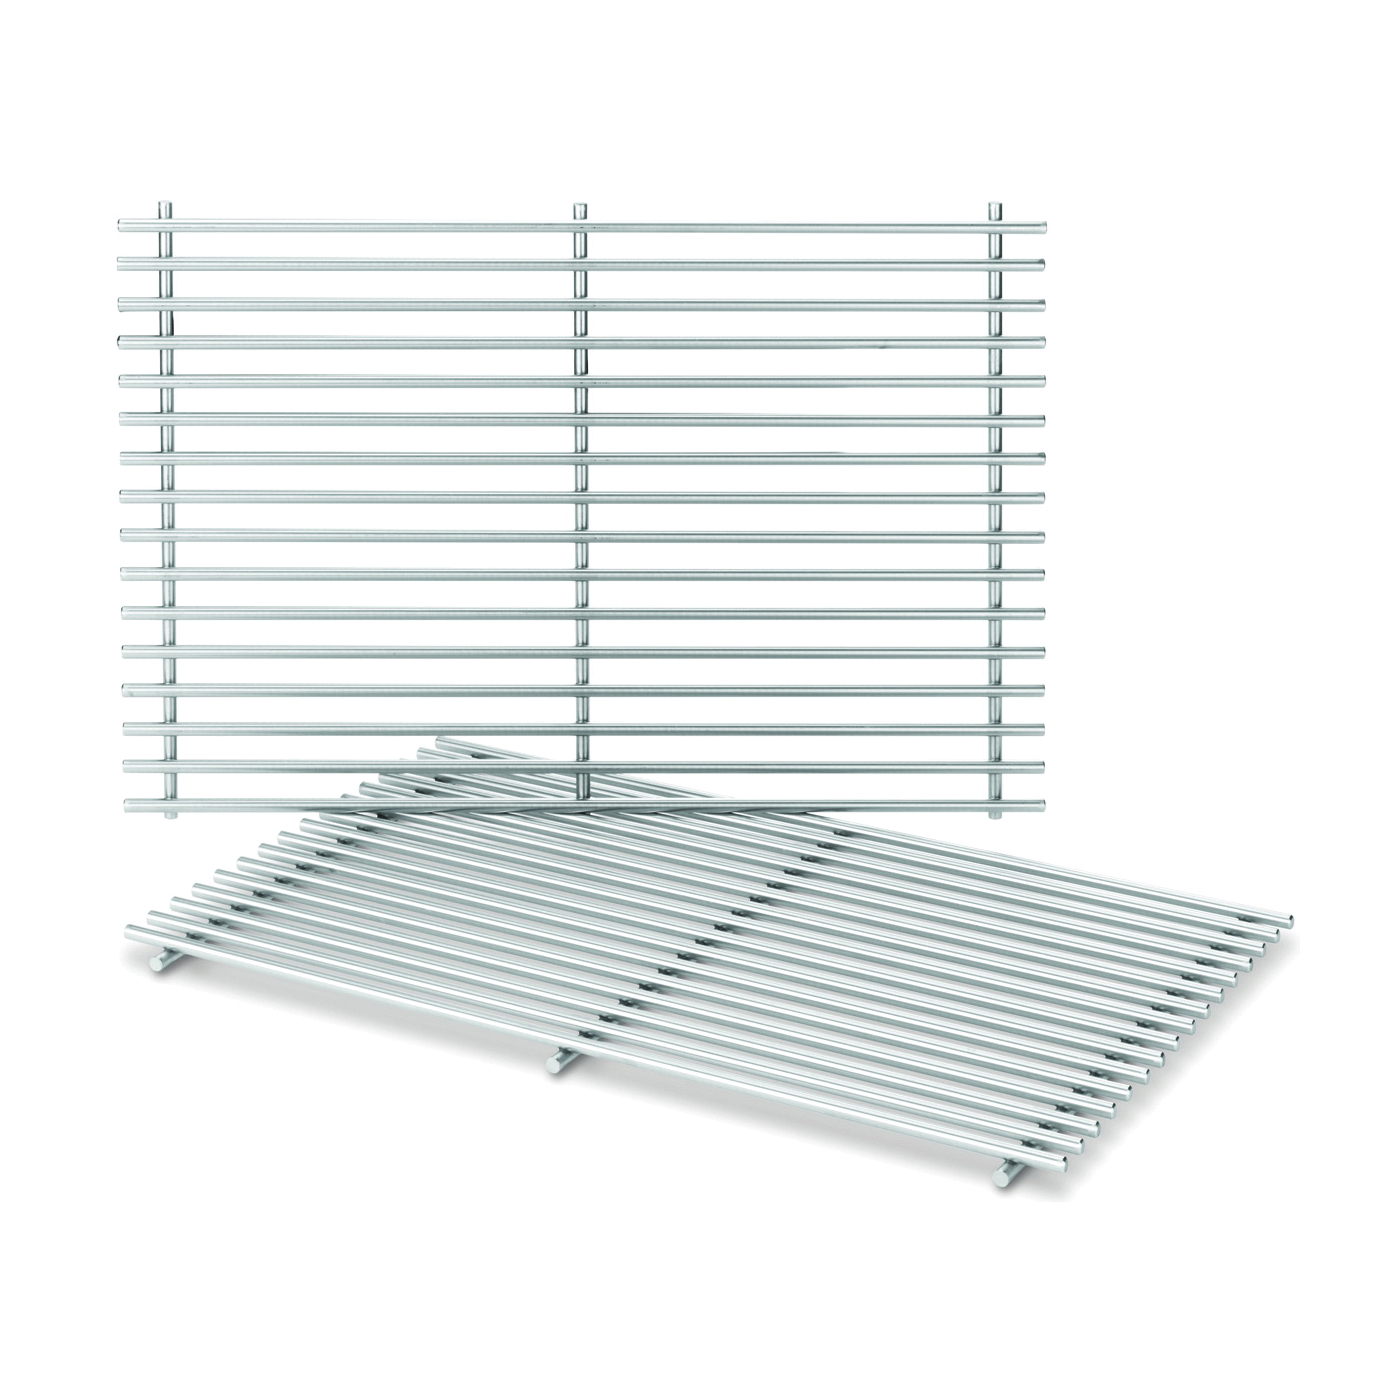 Picture of Weber 7639 Cooking Grate, 17.3 in L, 11.8 in W, Stainless Steel